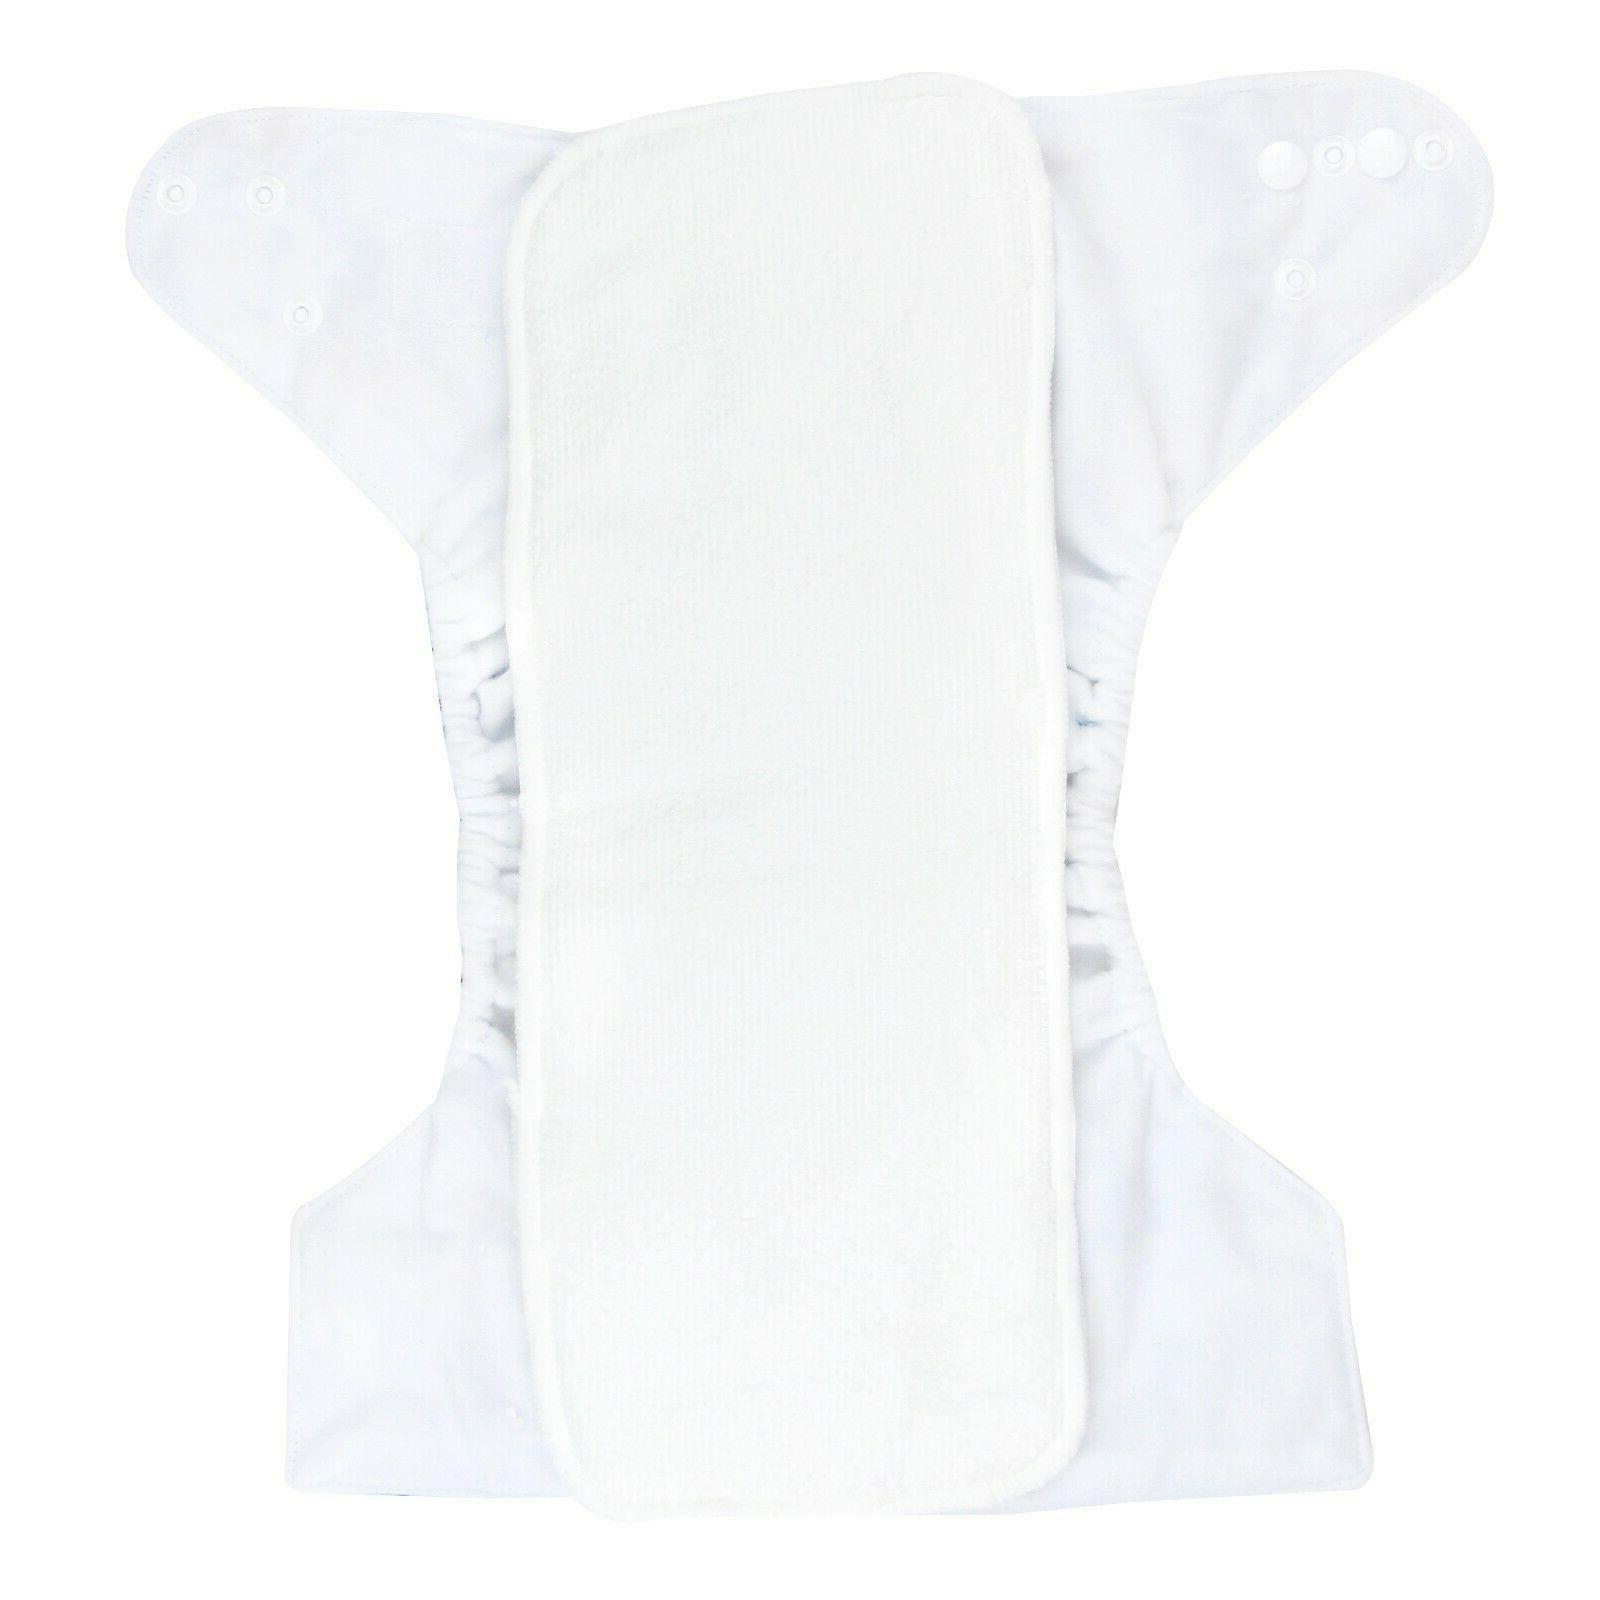 Reusable, Waterproof Soft Baby with